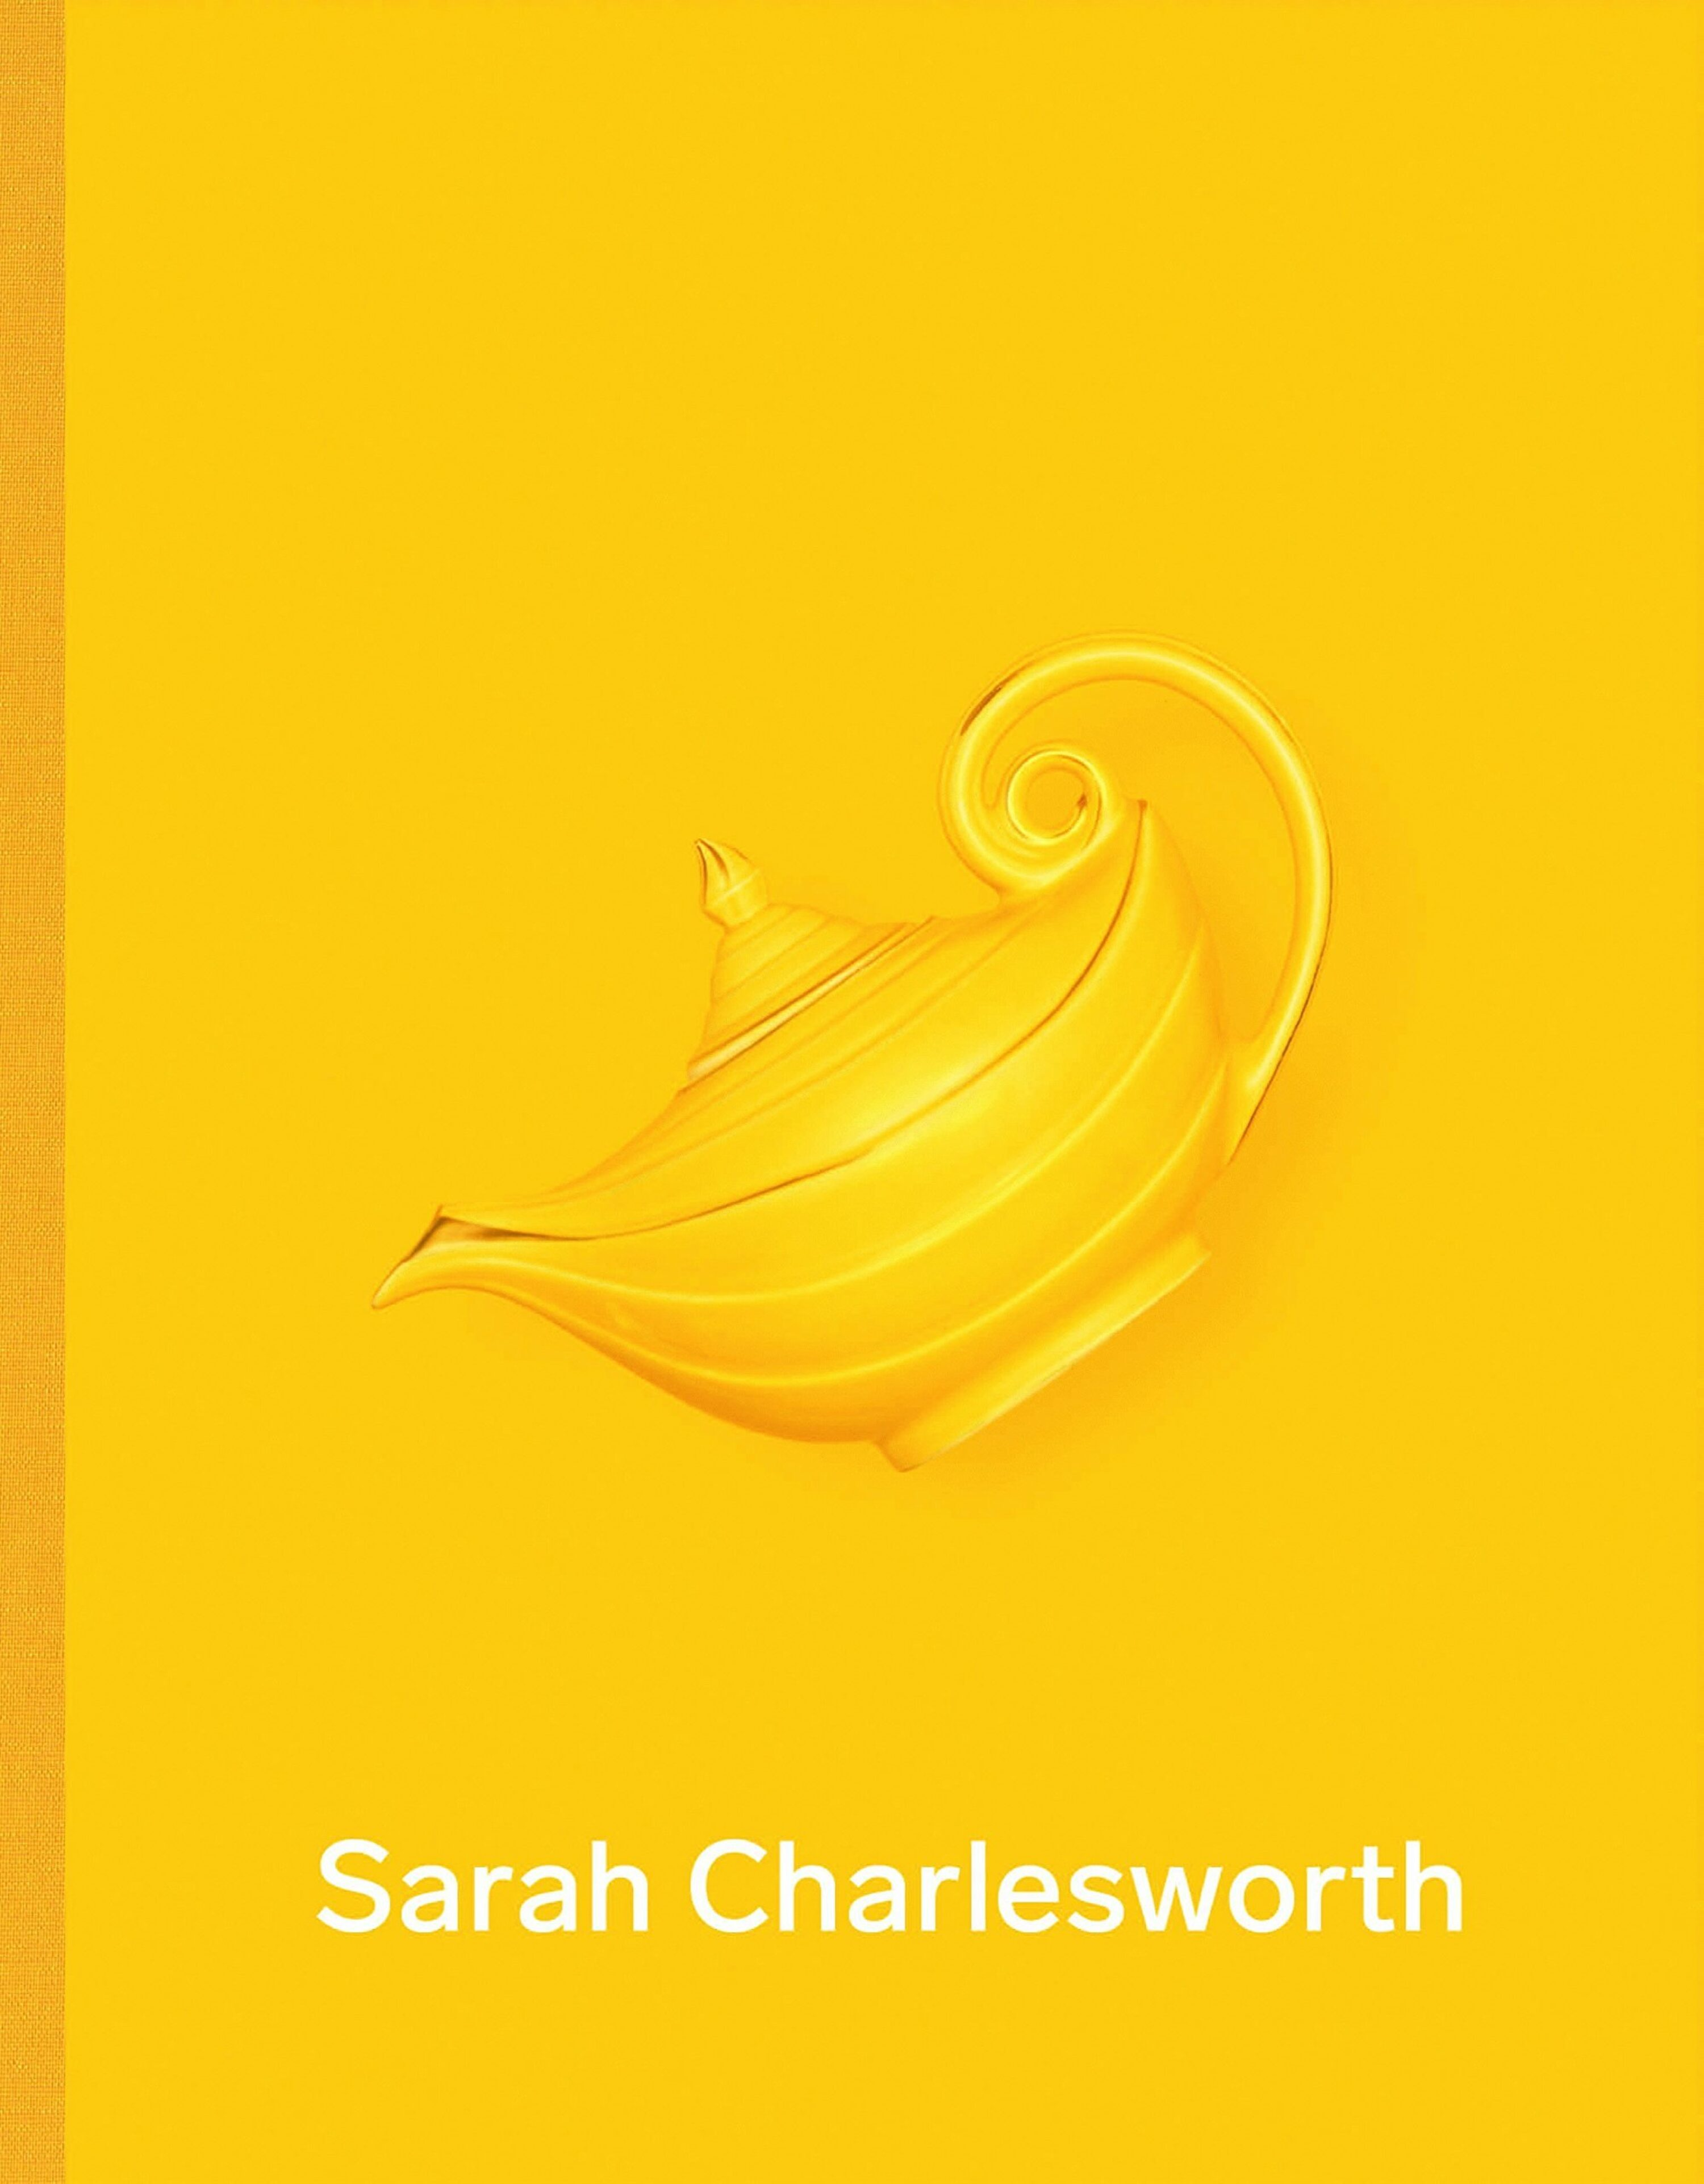 Image of the front cover of Sarah Charlesworth